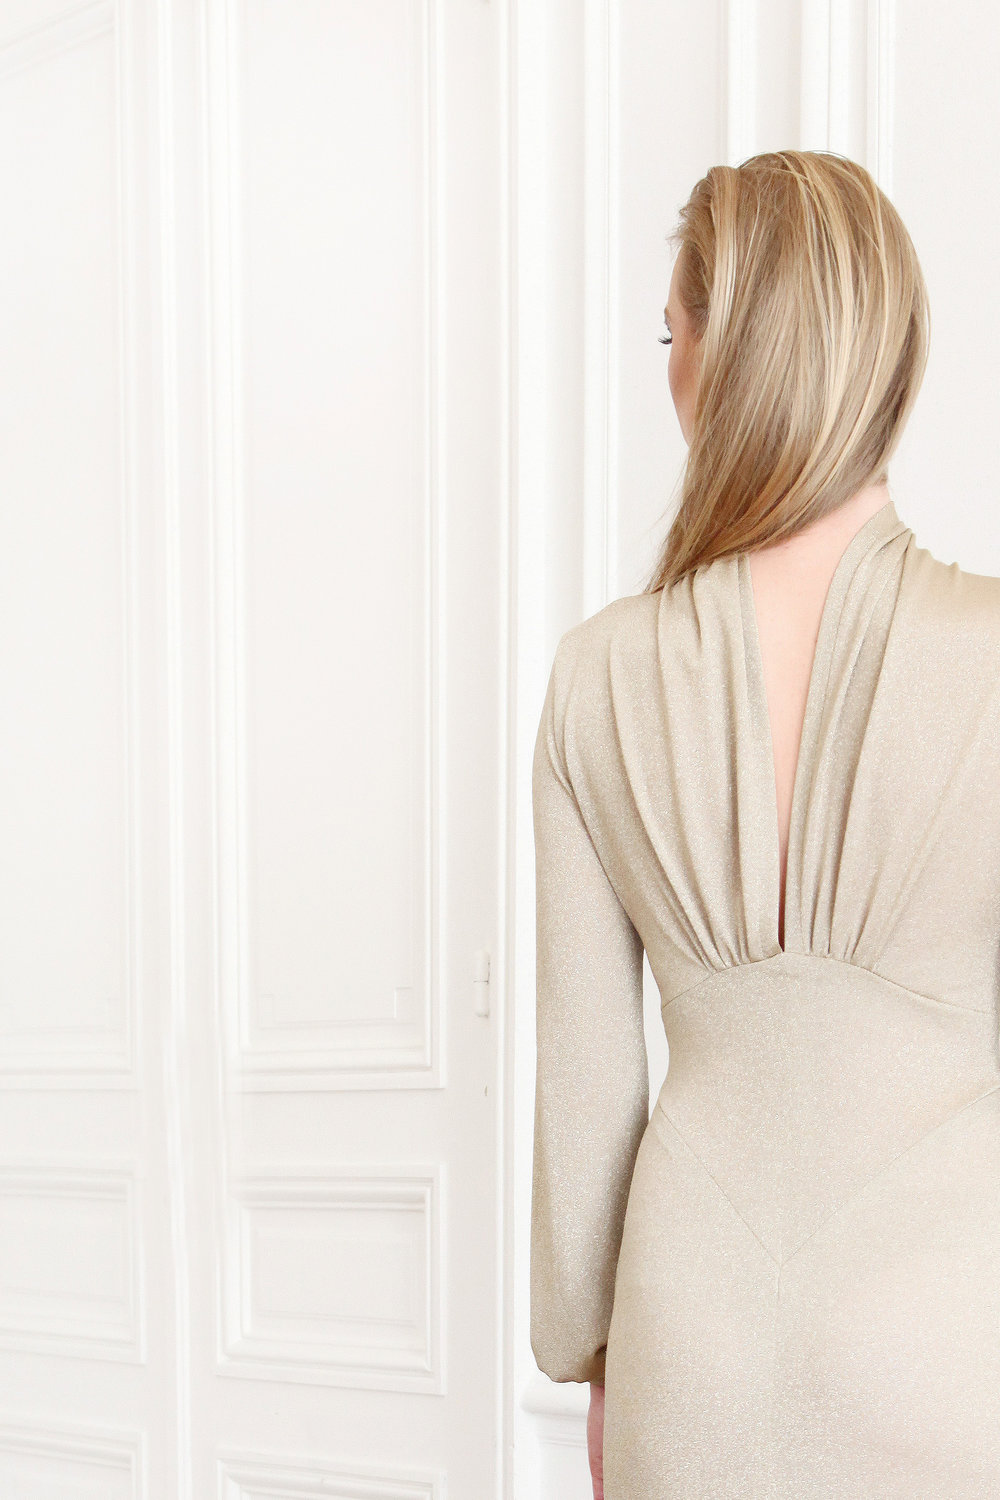 D'Or - Lurex blended Jersey Dress